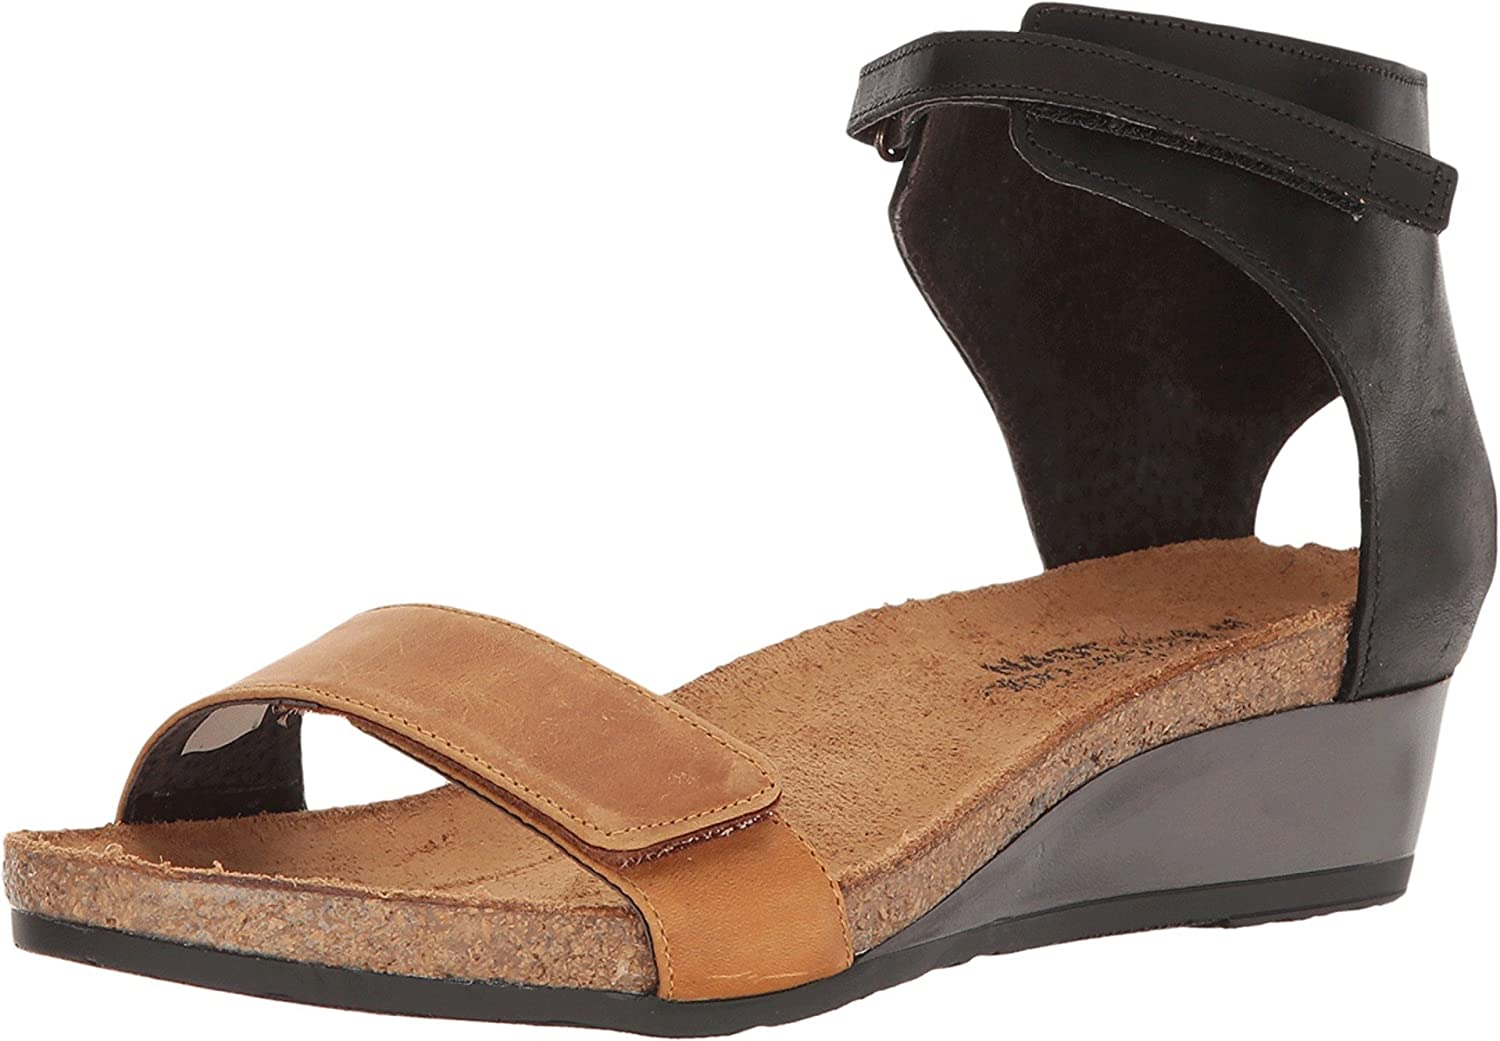 NAOT Women's Memphis 4 years warranty Mall Prophecy